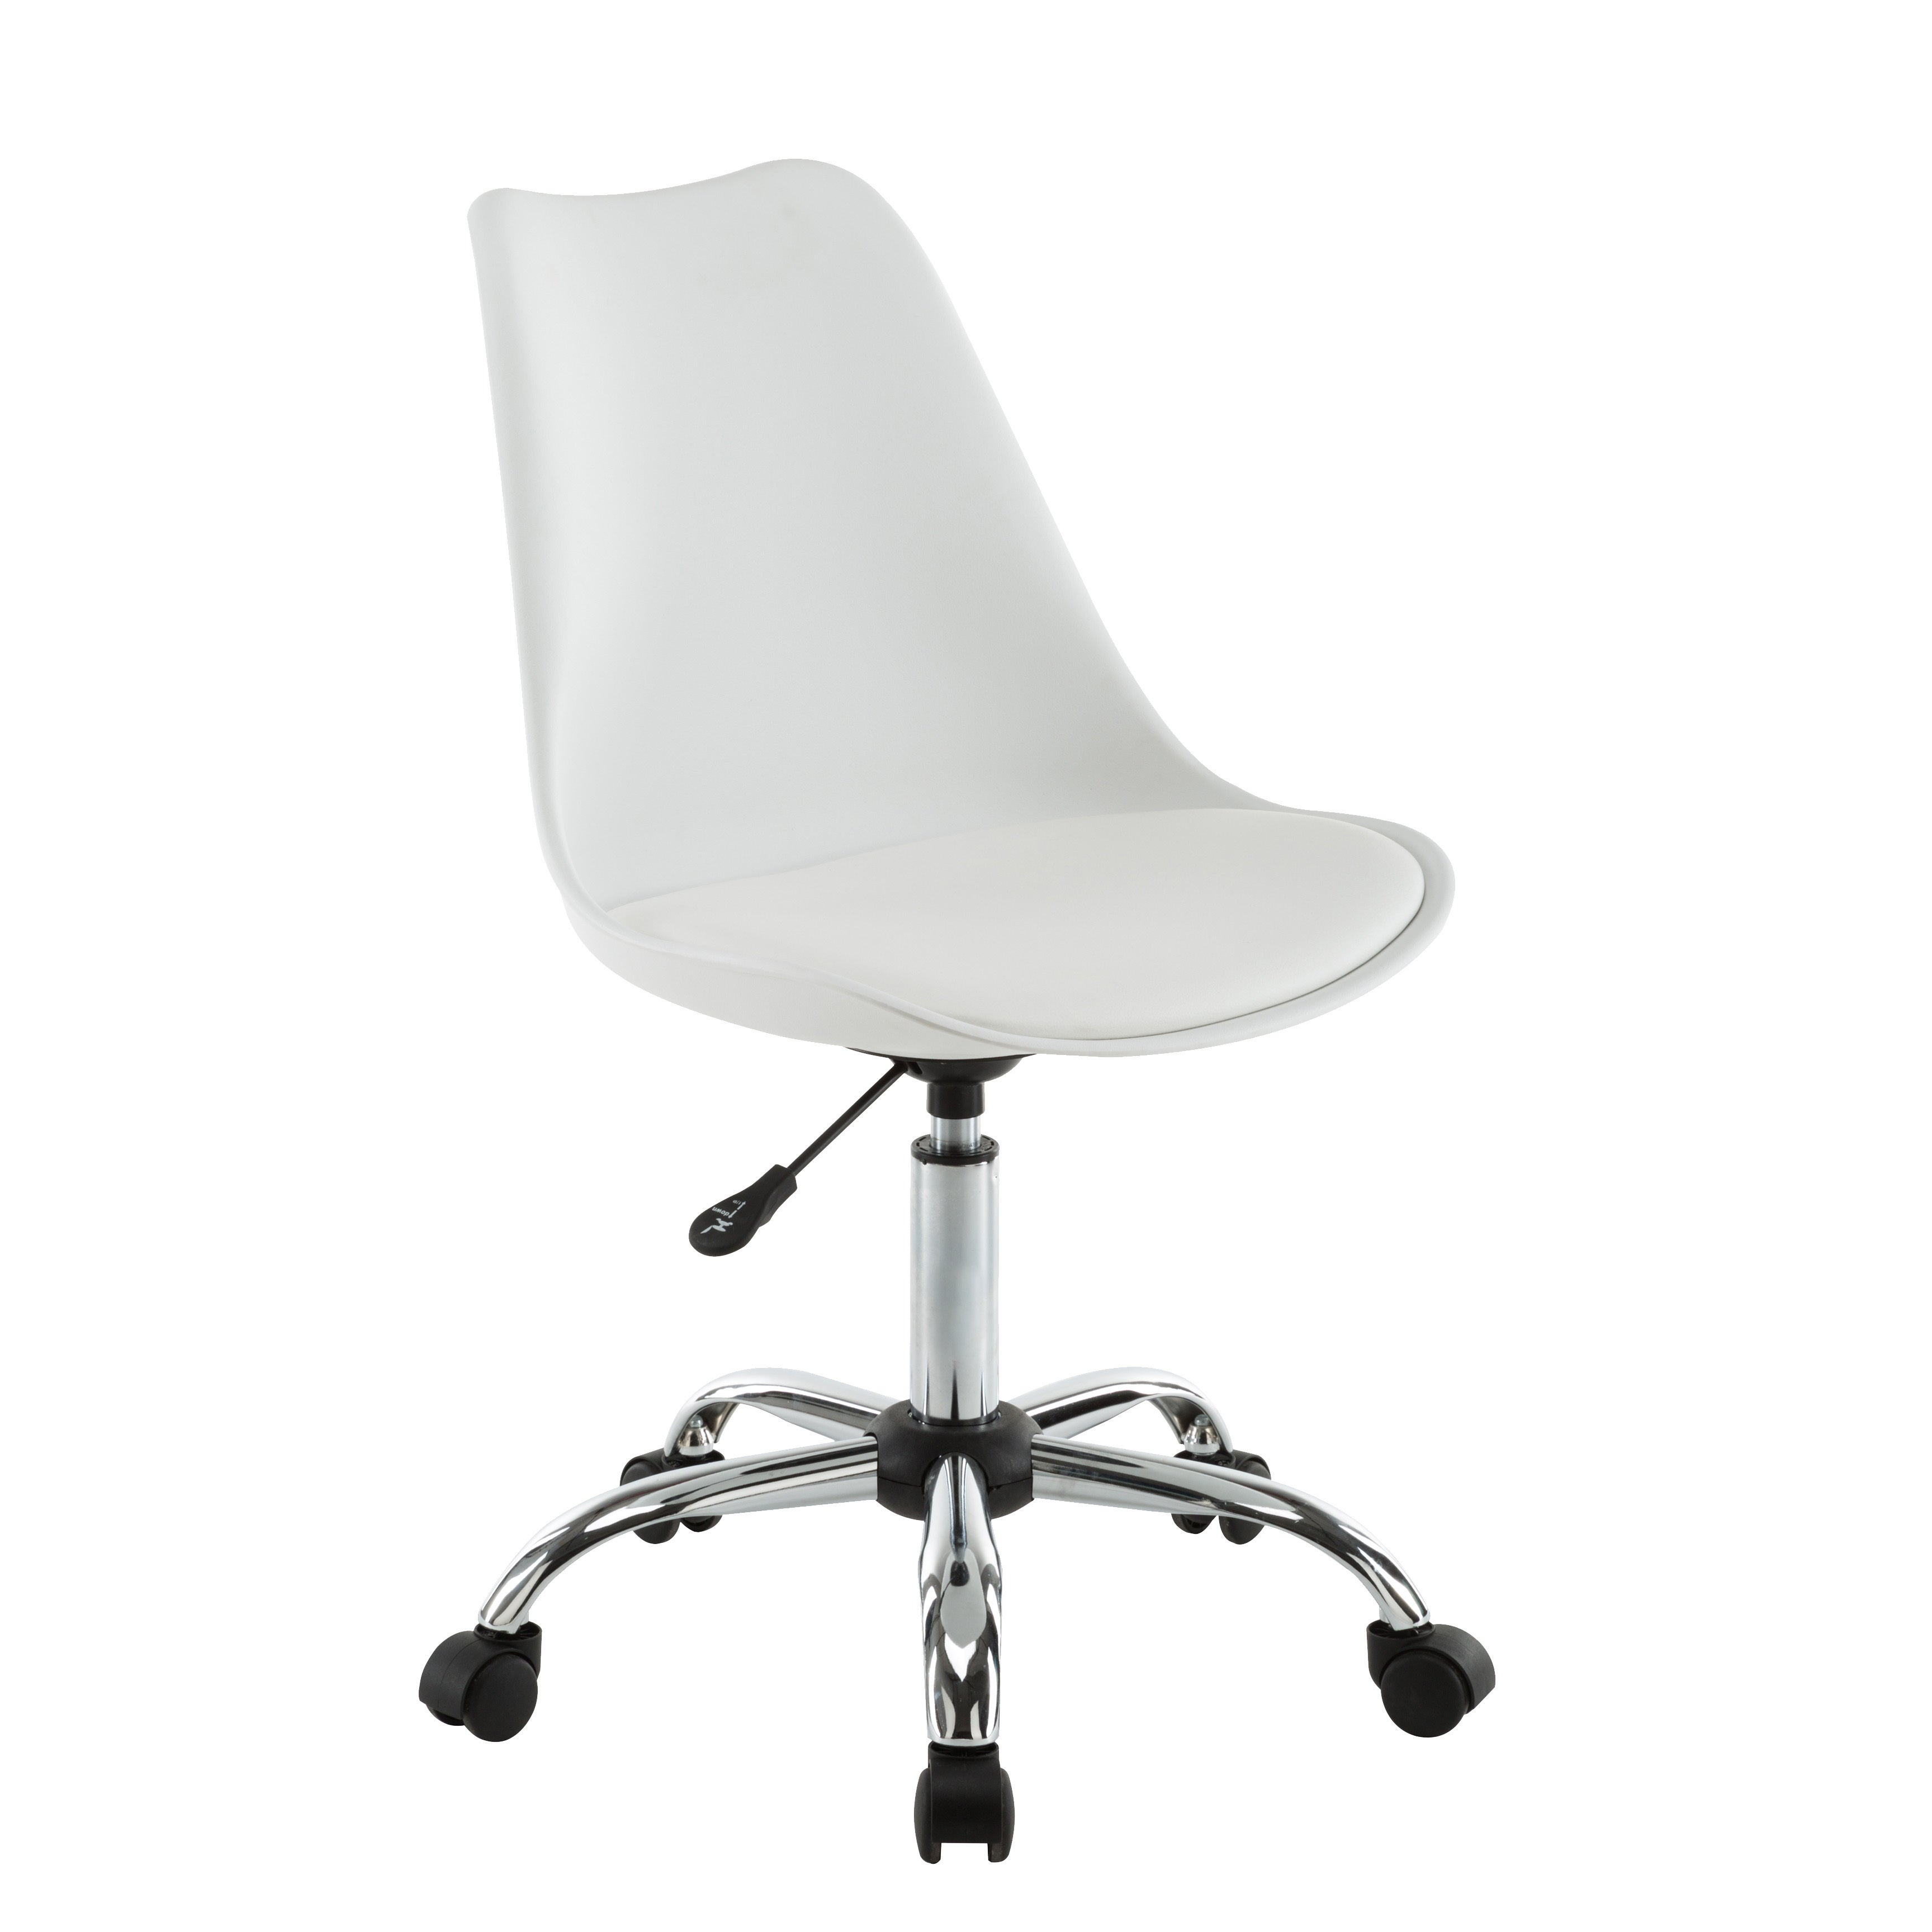 buy office conference room chairs online at overstock our Radio Galaxy porthos home teresa adjustable office chair